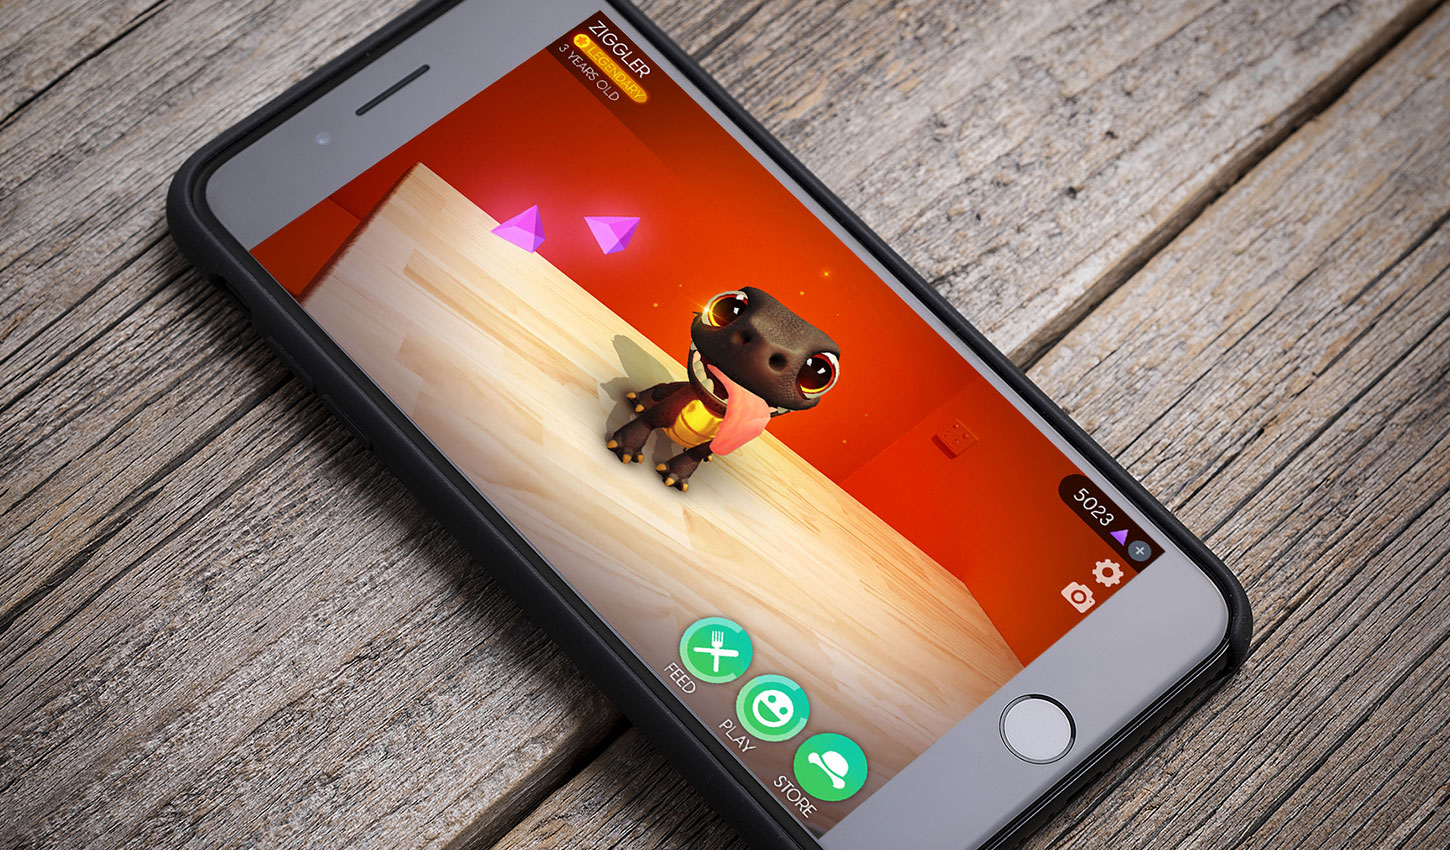 ARKit six month anniversary hero image  - arkit six months hero - ARKit-only Apps Surpass 13 Million Downloads in First Six Months, Nearly Half from Games